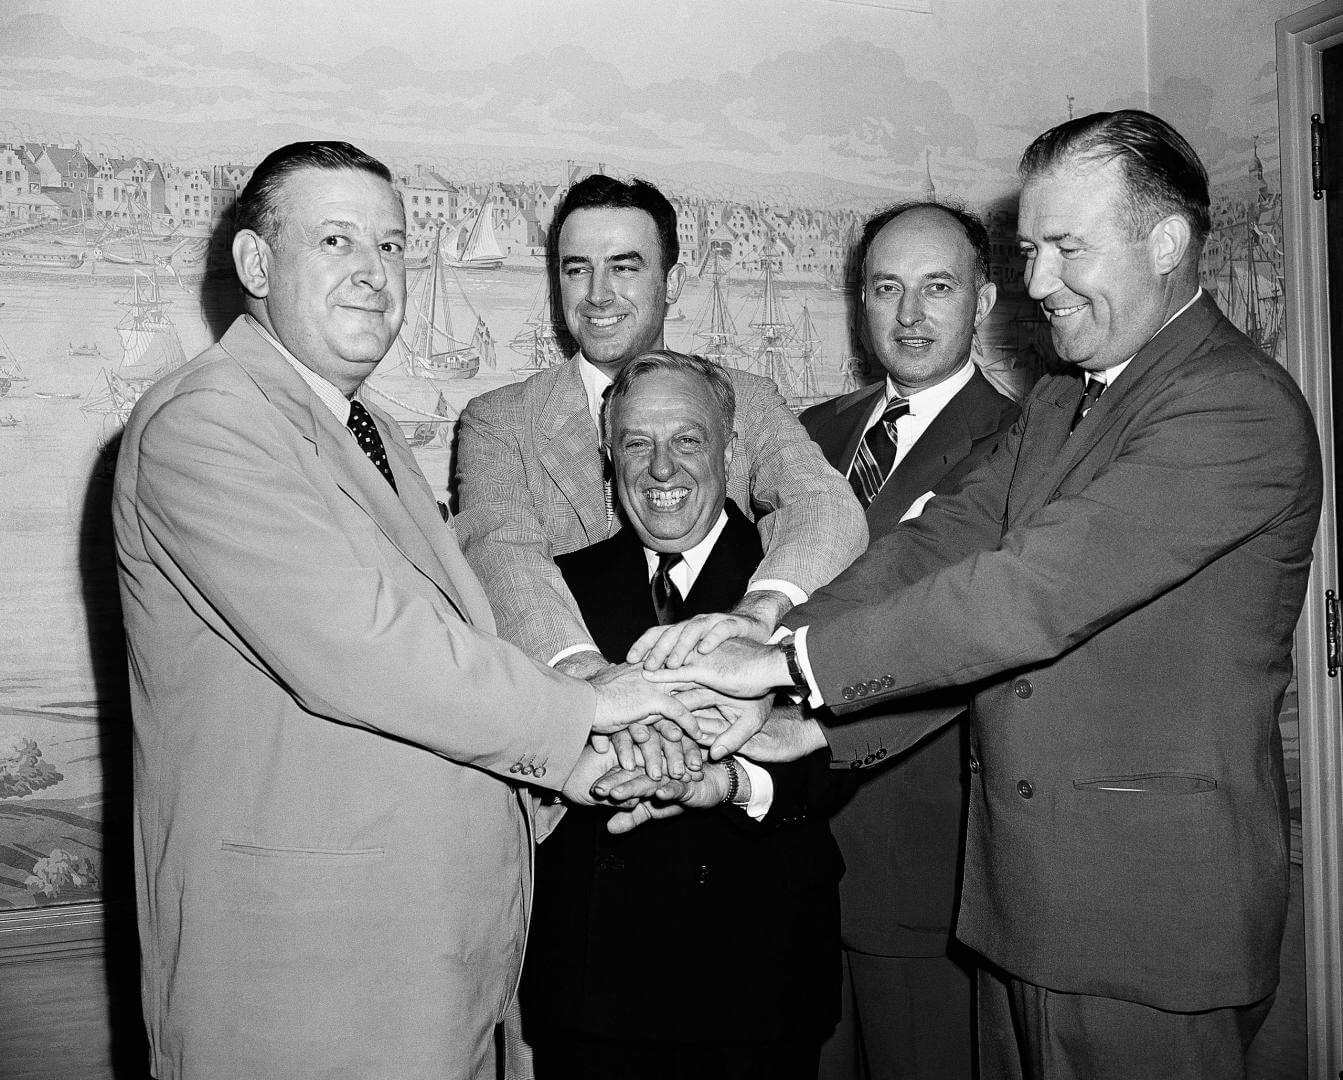 Representatives of the National Basketball League and Basketball Association of America, shake hands after agreeing to a merger of the two circuits into an 18-team organization to be known as the National Basketball Association, Aug 3, 1949, New York. Grouped around the smiling Maurice Podoloff, center, are left to right: Ike Duffey, Leo Ferris, Ned Irish, and Walter Brown. (AP Photo/John Lent)